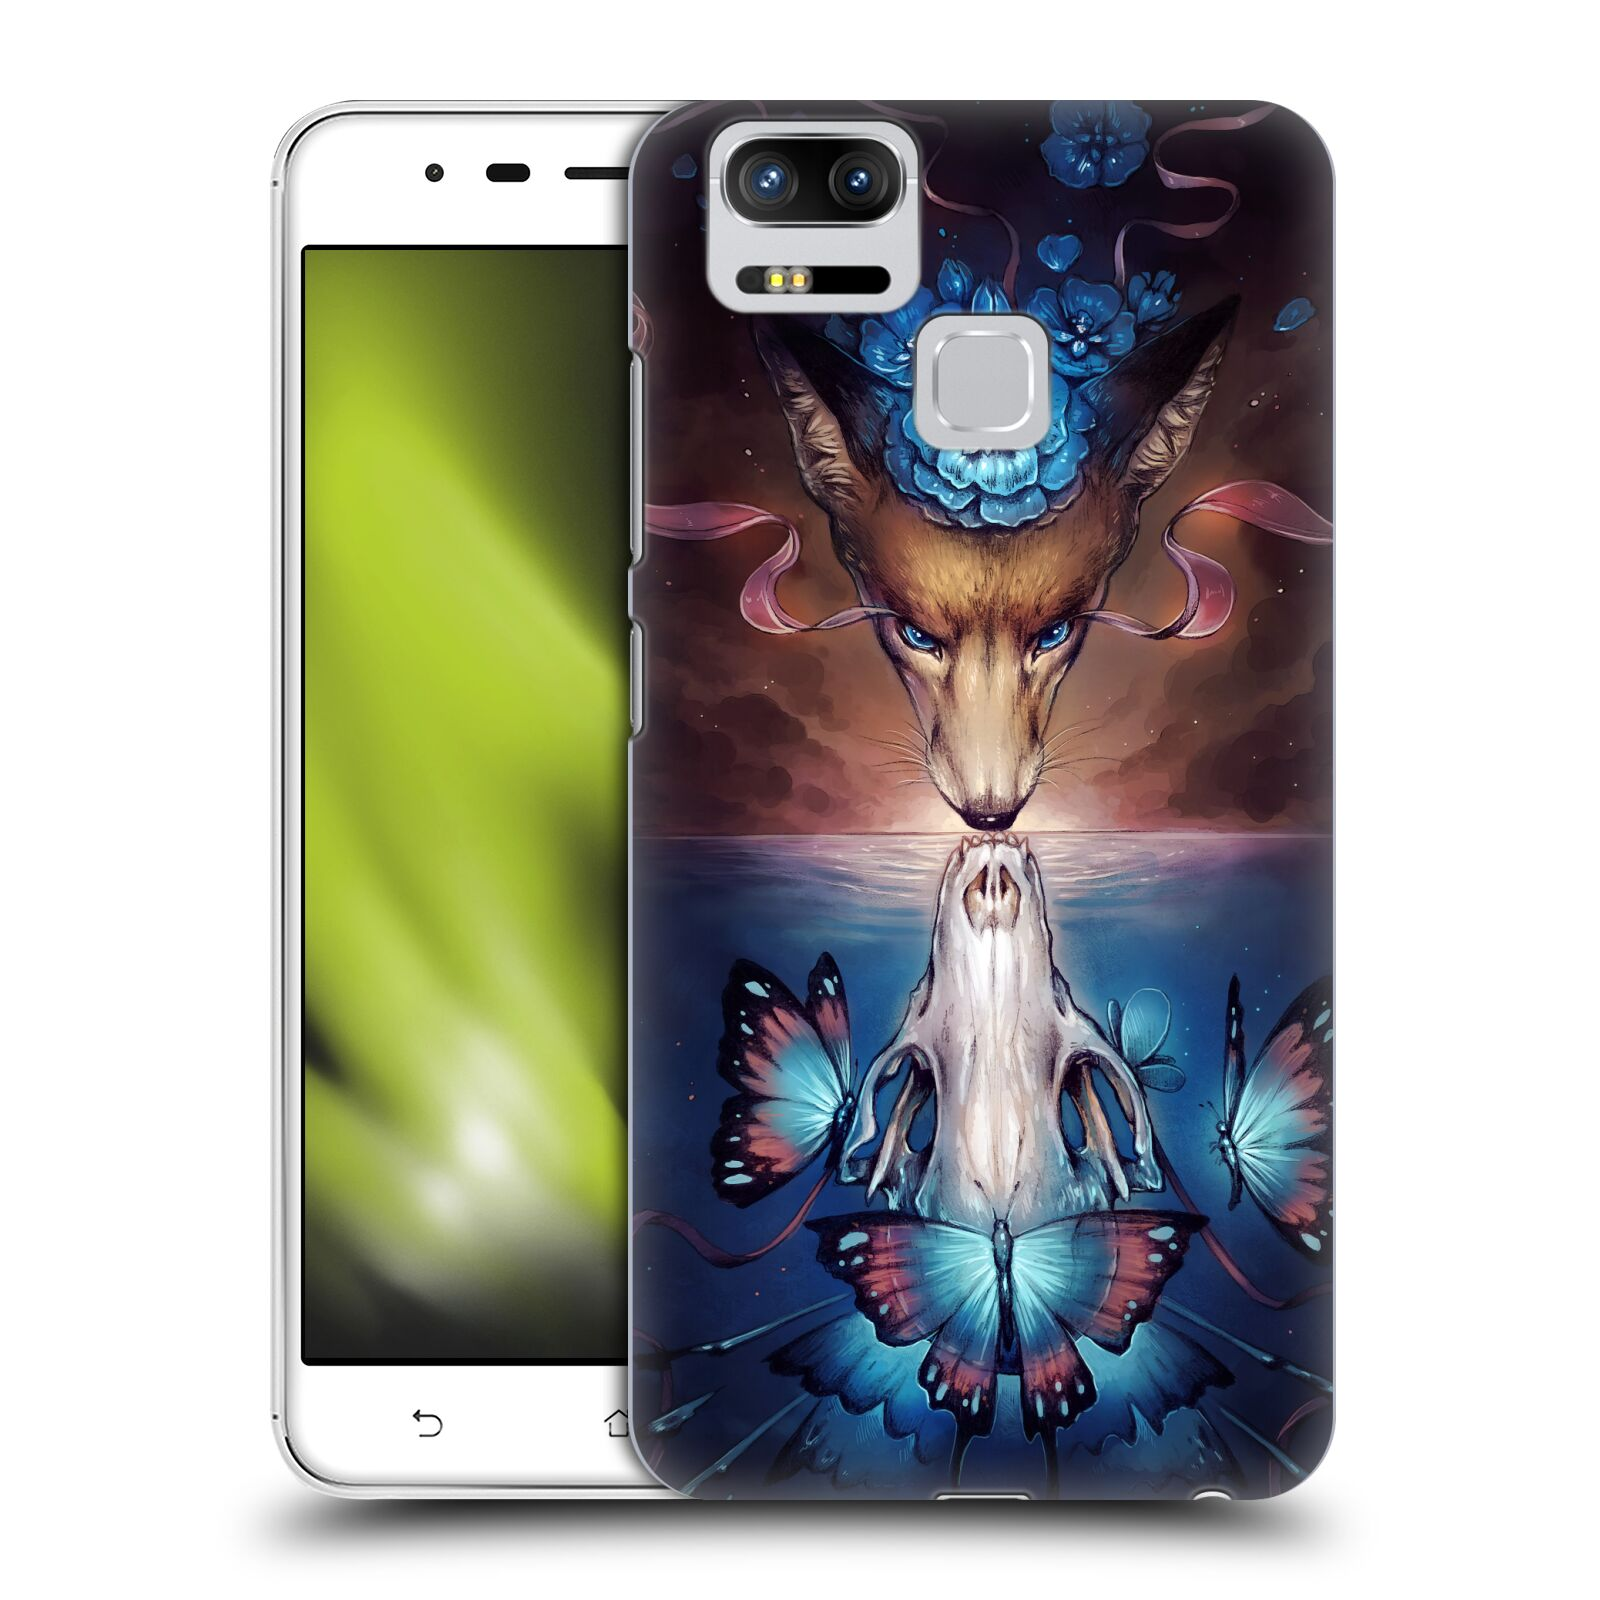 OFFICIAL-JONAS-034-JOJOESART-034-JODICKE-WILDLIFE-2-BACK-CASE-FOR-ASUS-ZENFONE-PHONES